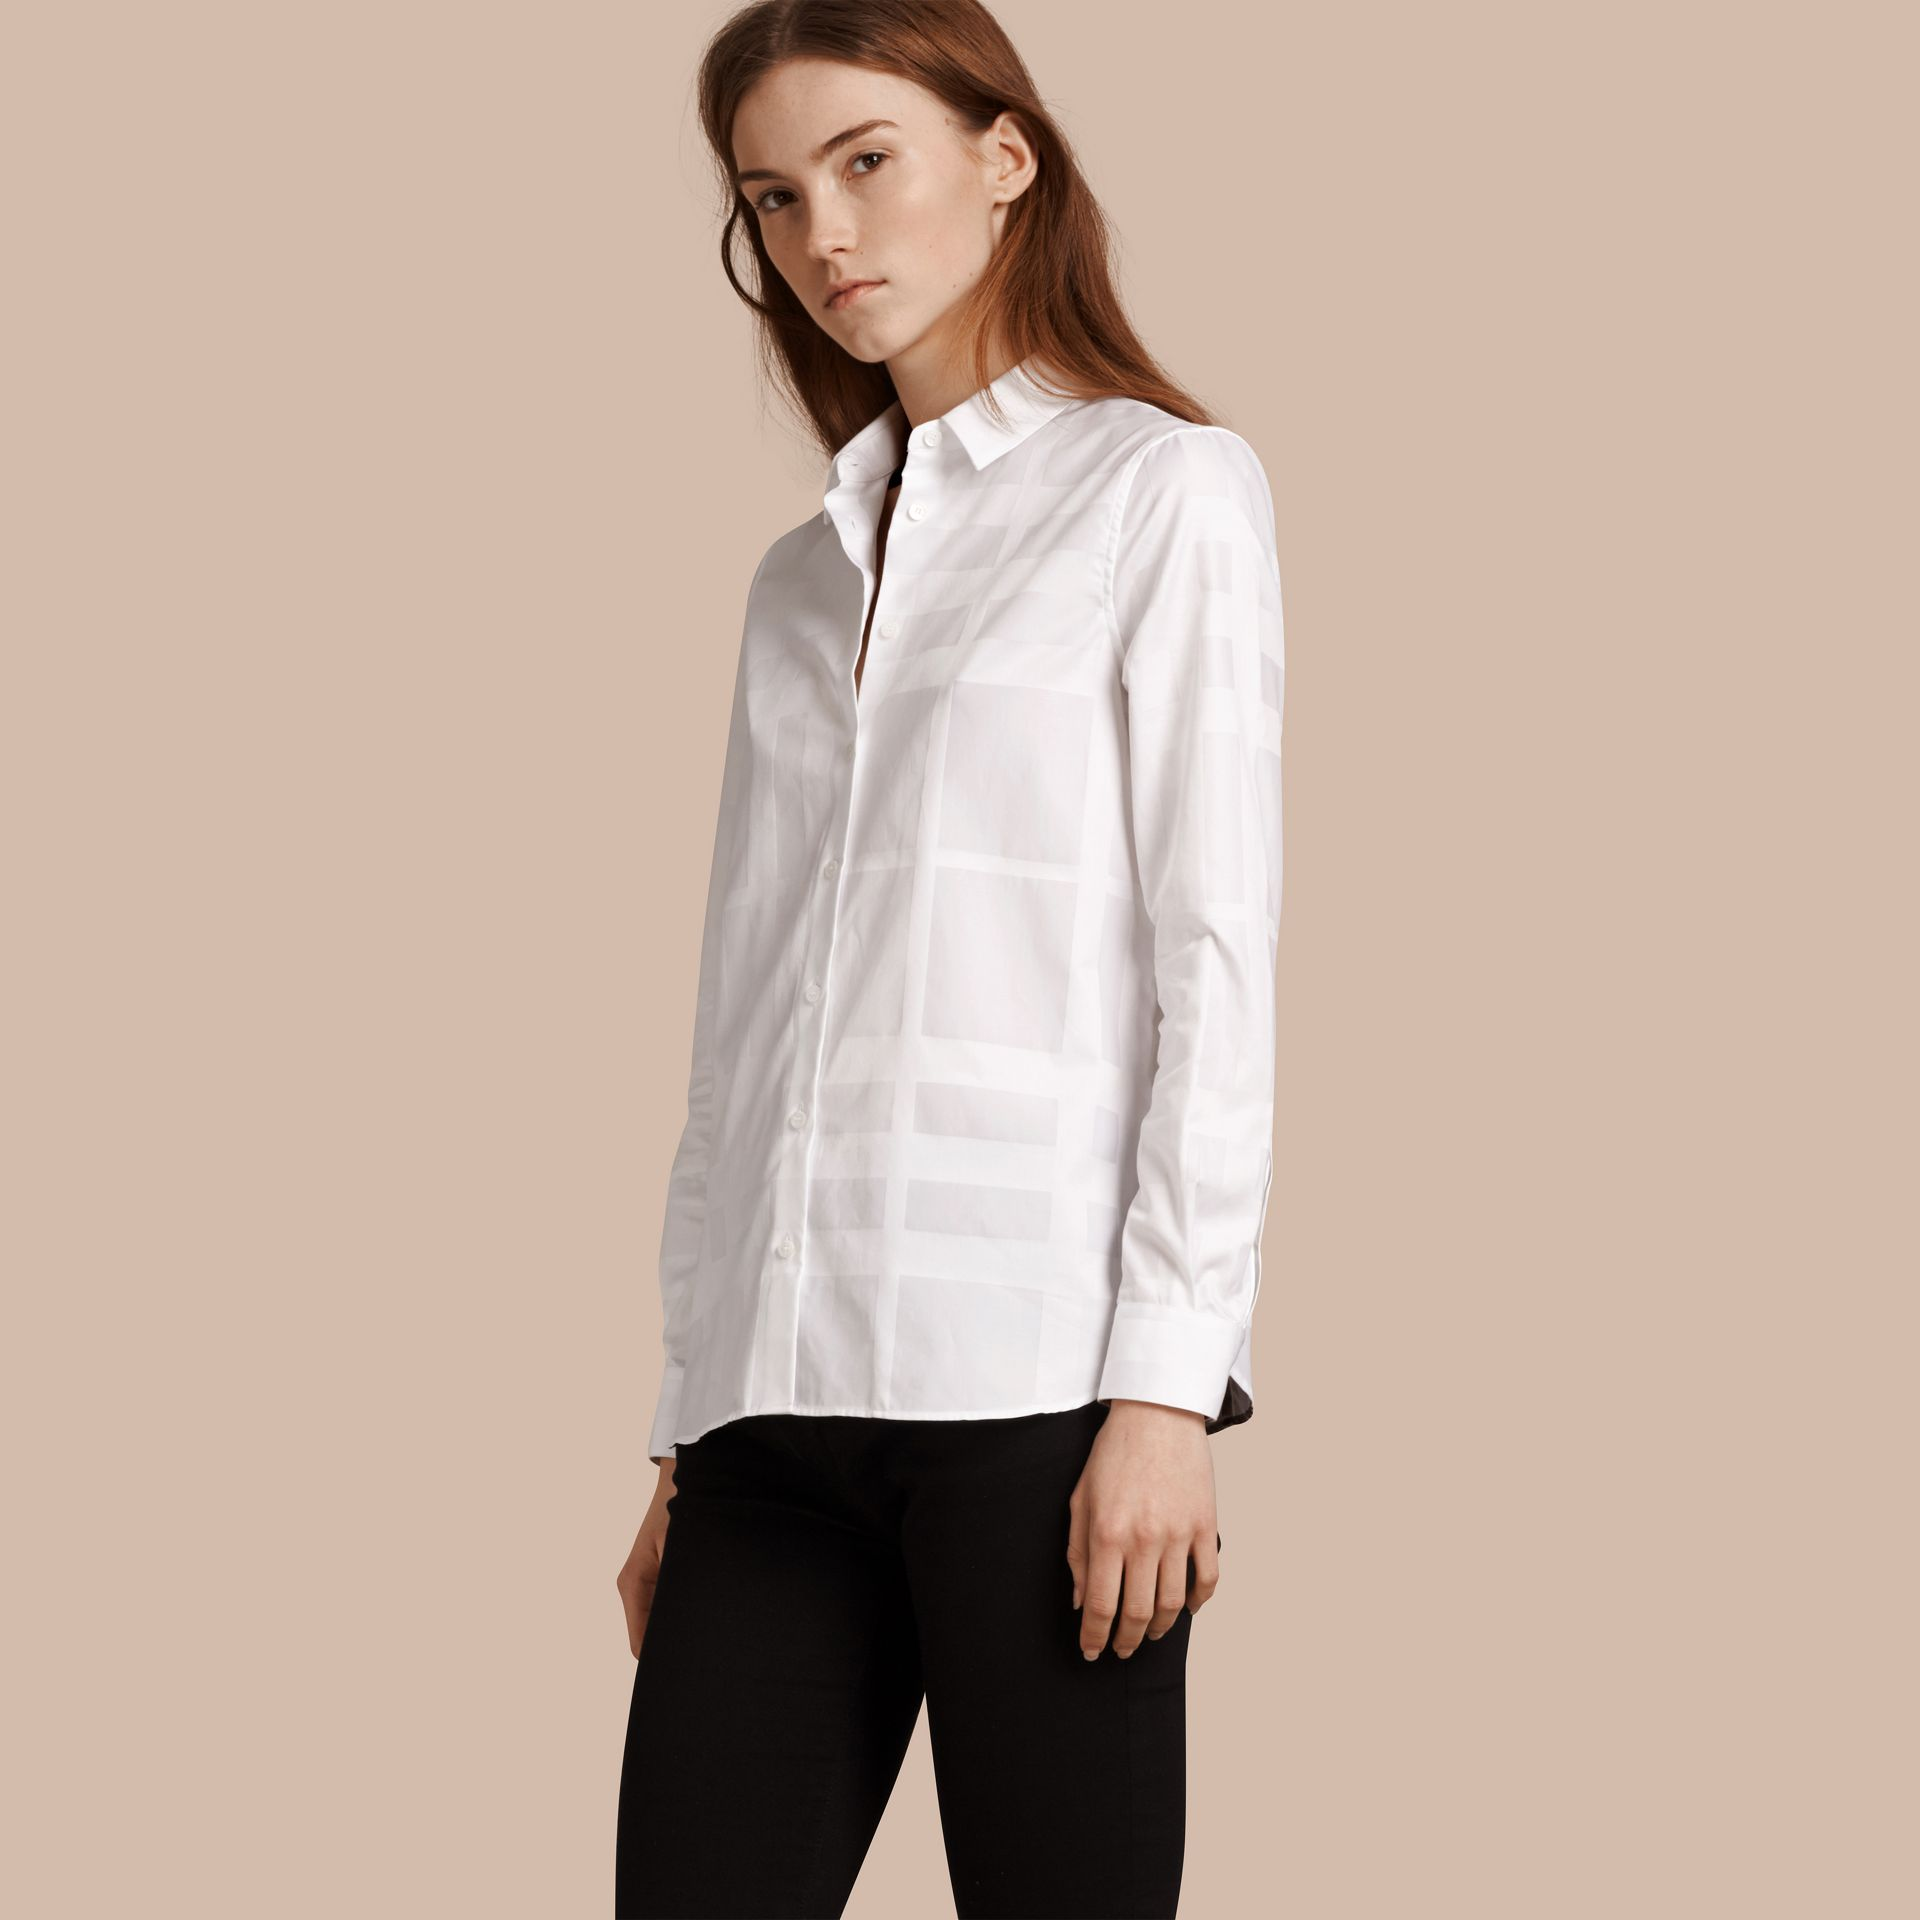 Check Jacquard Cotton Shirt White - gallery image 1